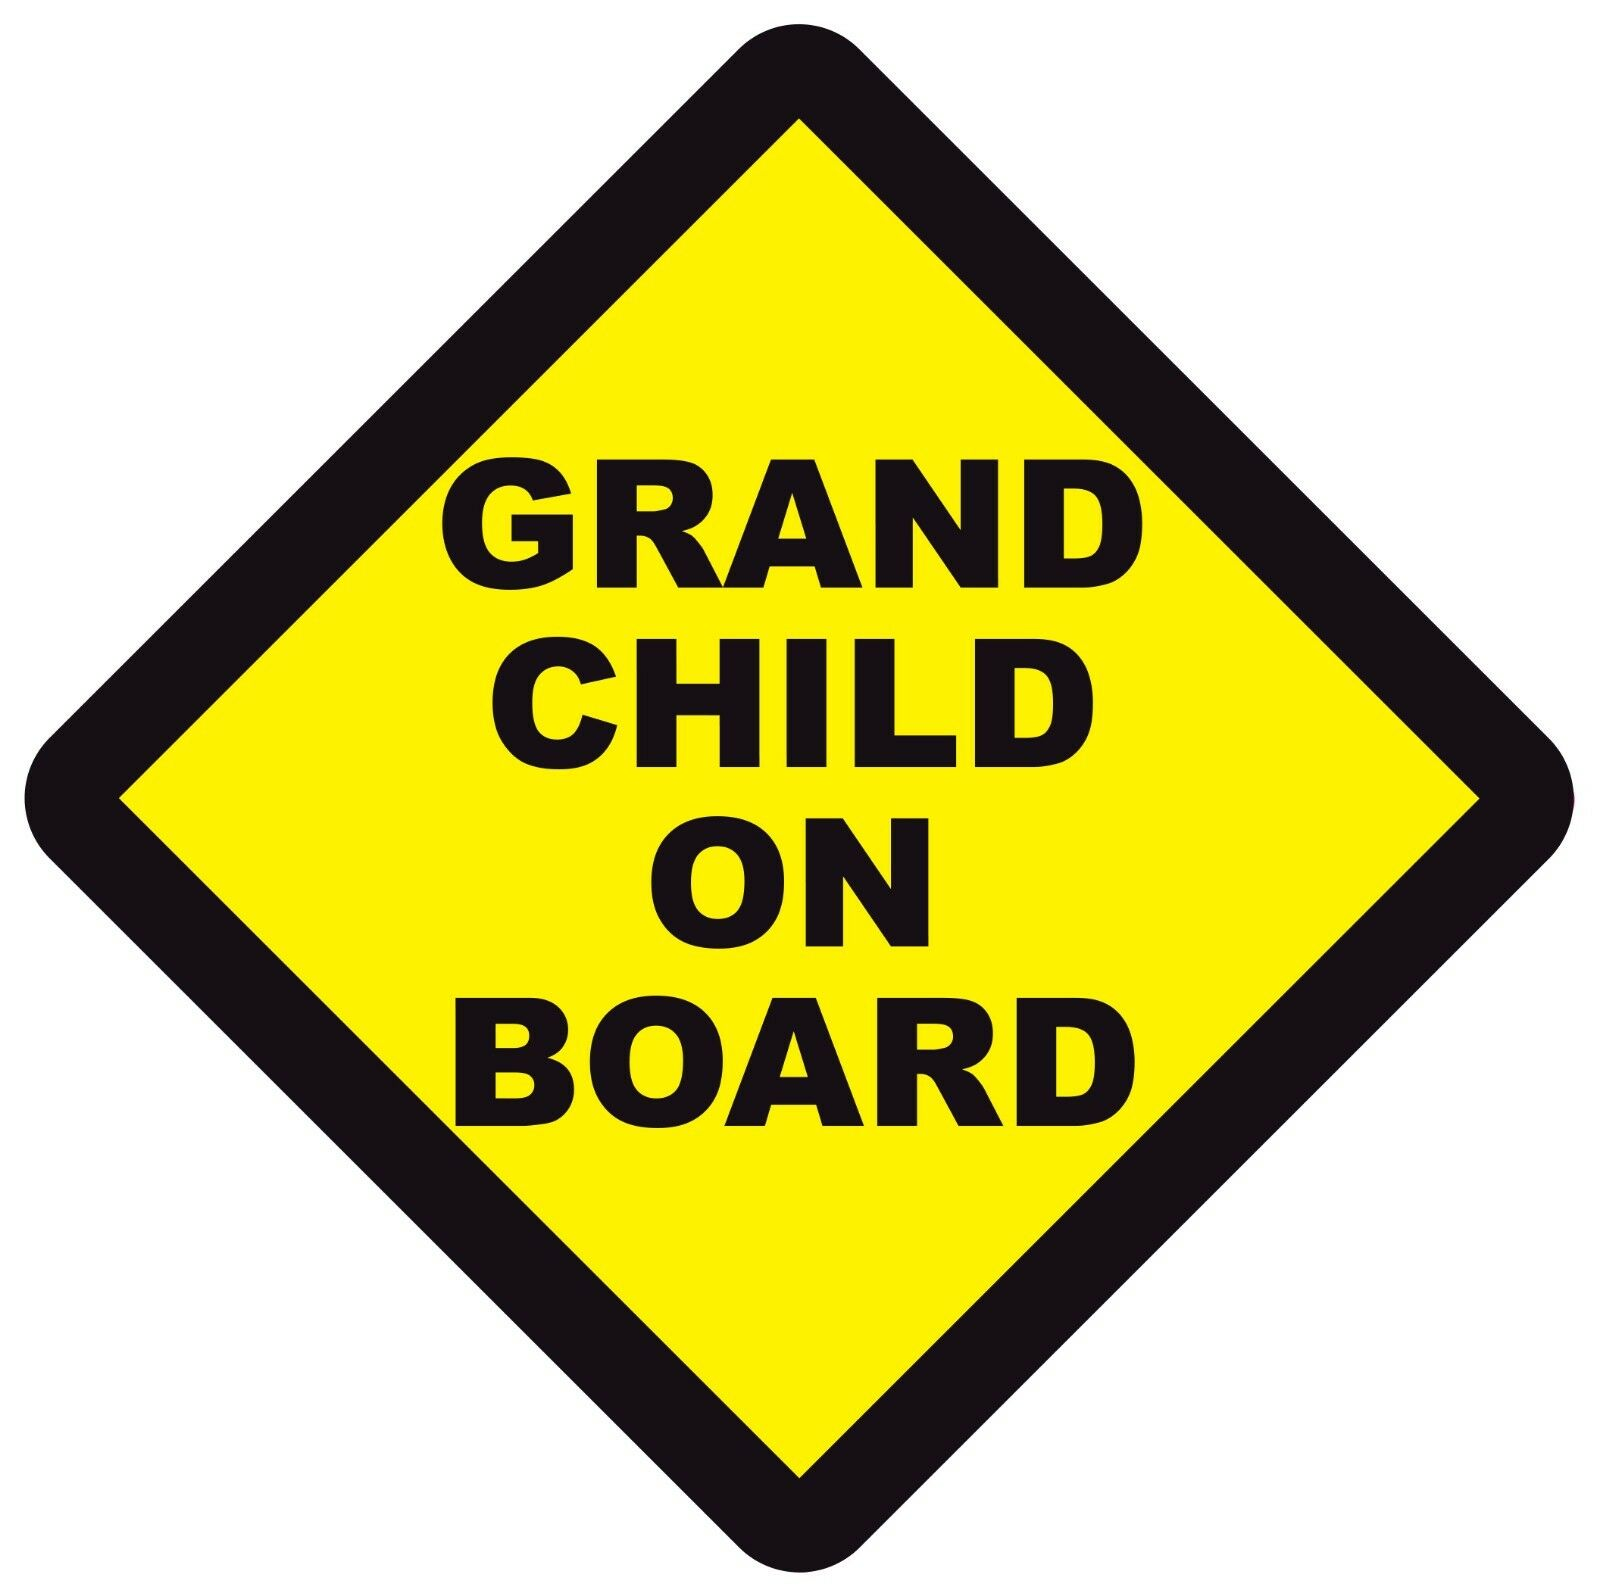 GRAND CHILD ON BOARD WARNING SAFETY SIGN Sticker Vinyl Decal for cars windows